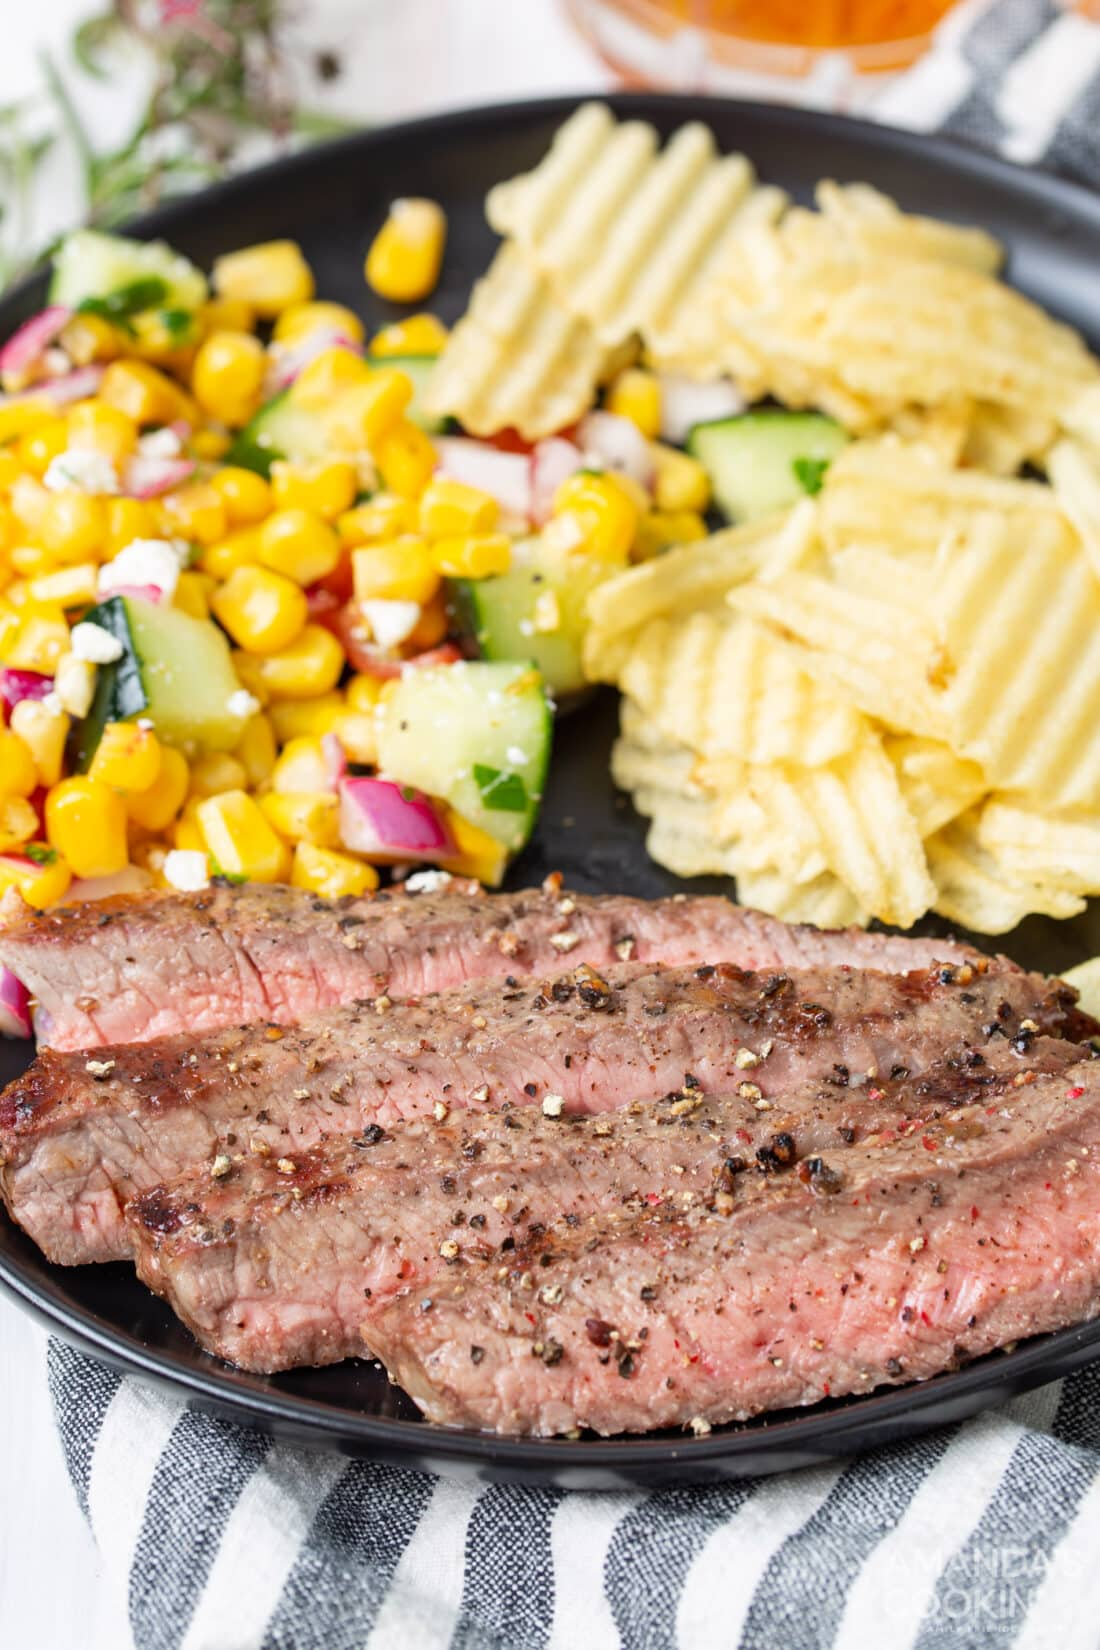 Grilled New steak on a plate with corn